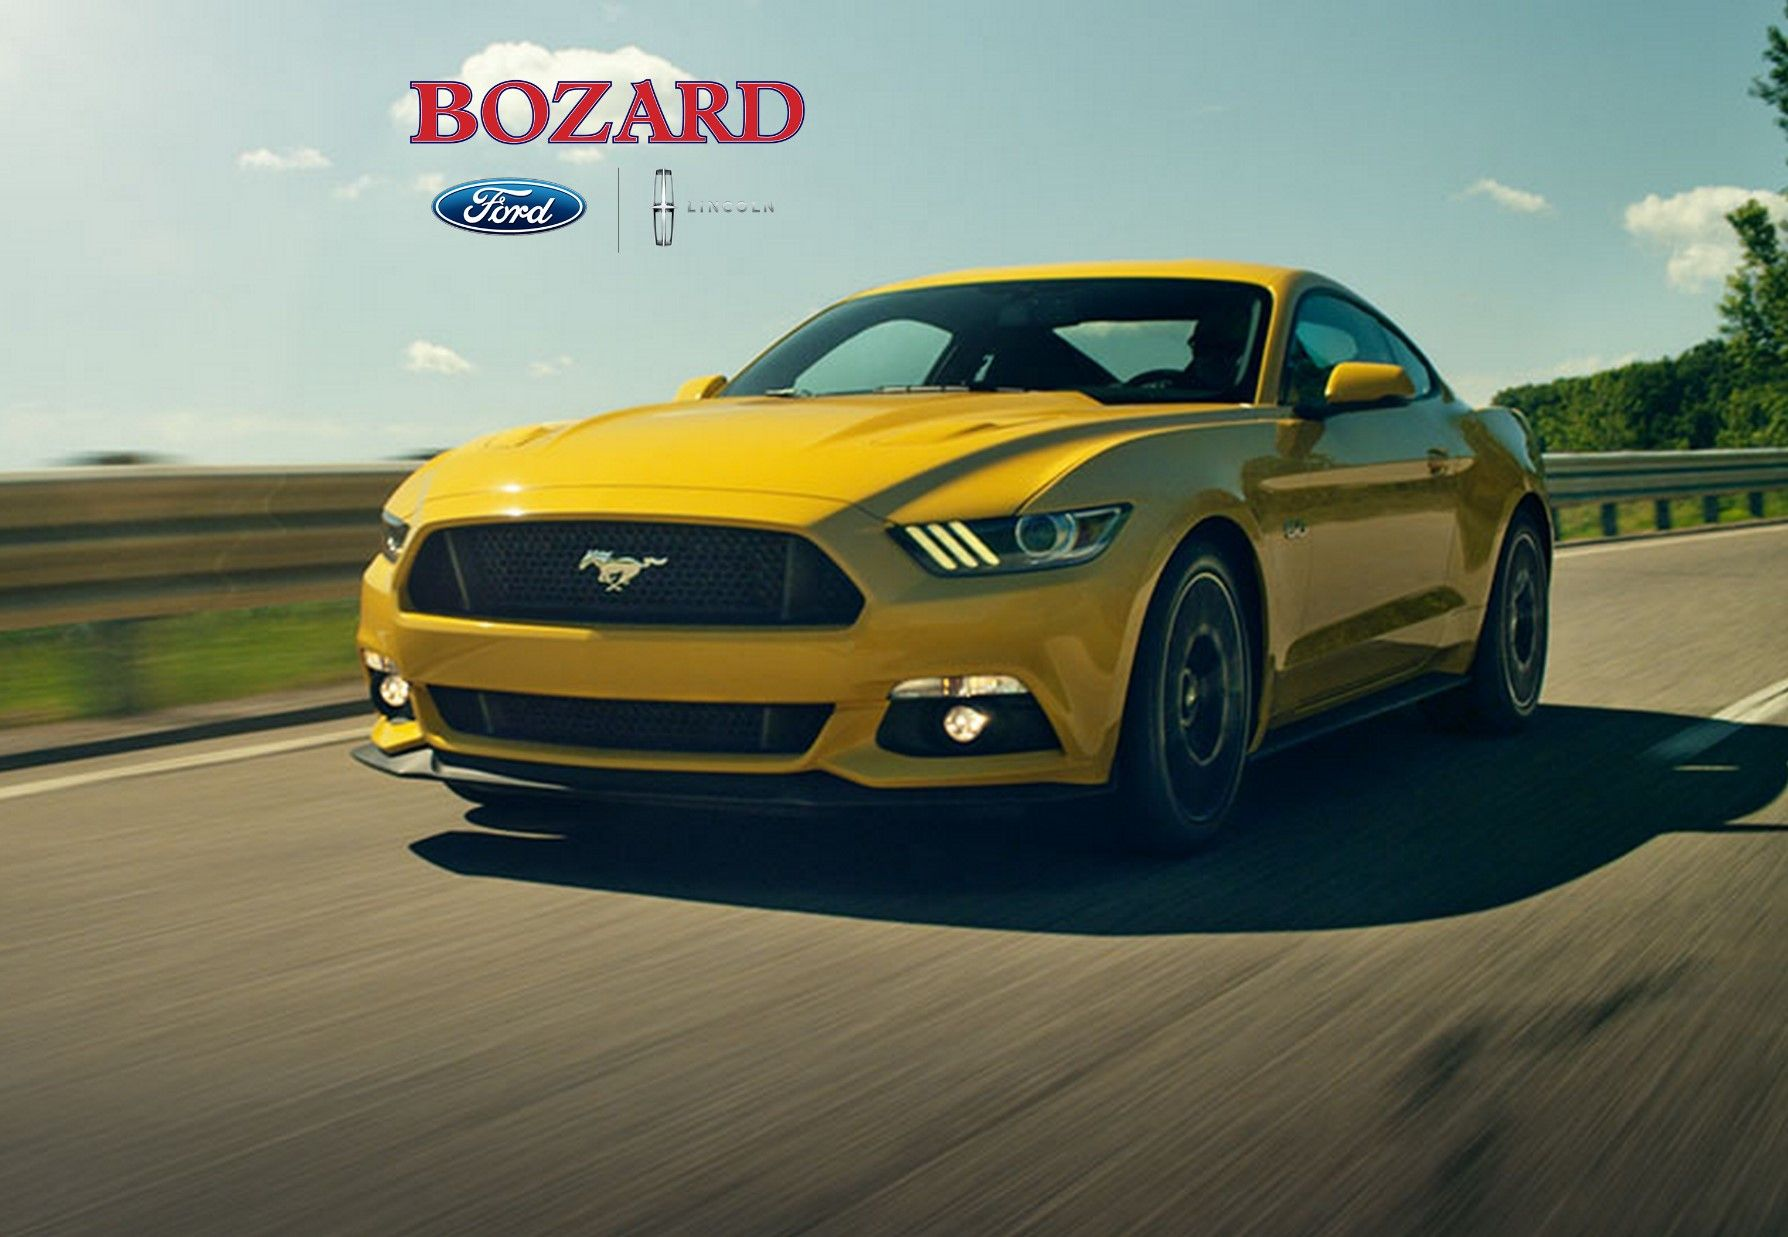 2015 Ford Mustangs for Sale at Bozard Ford near